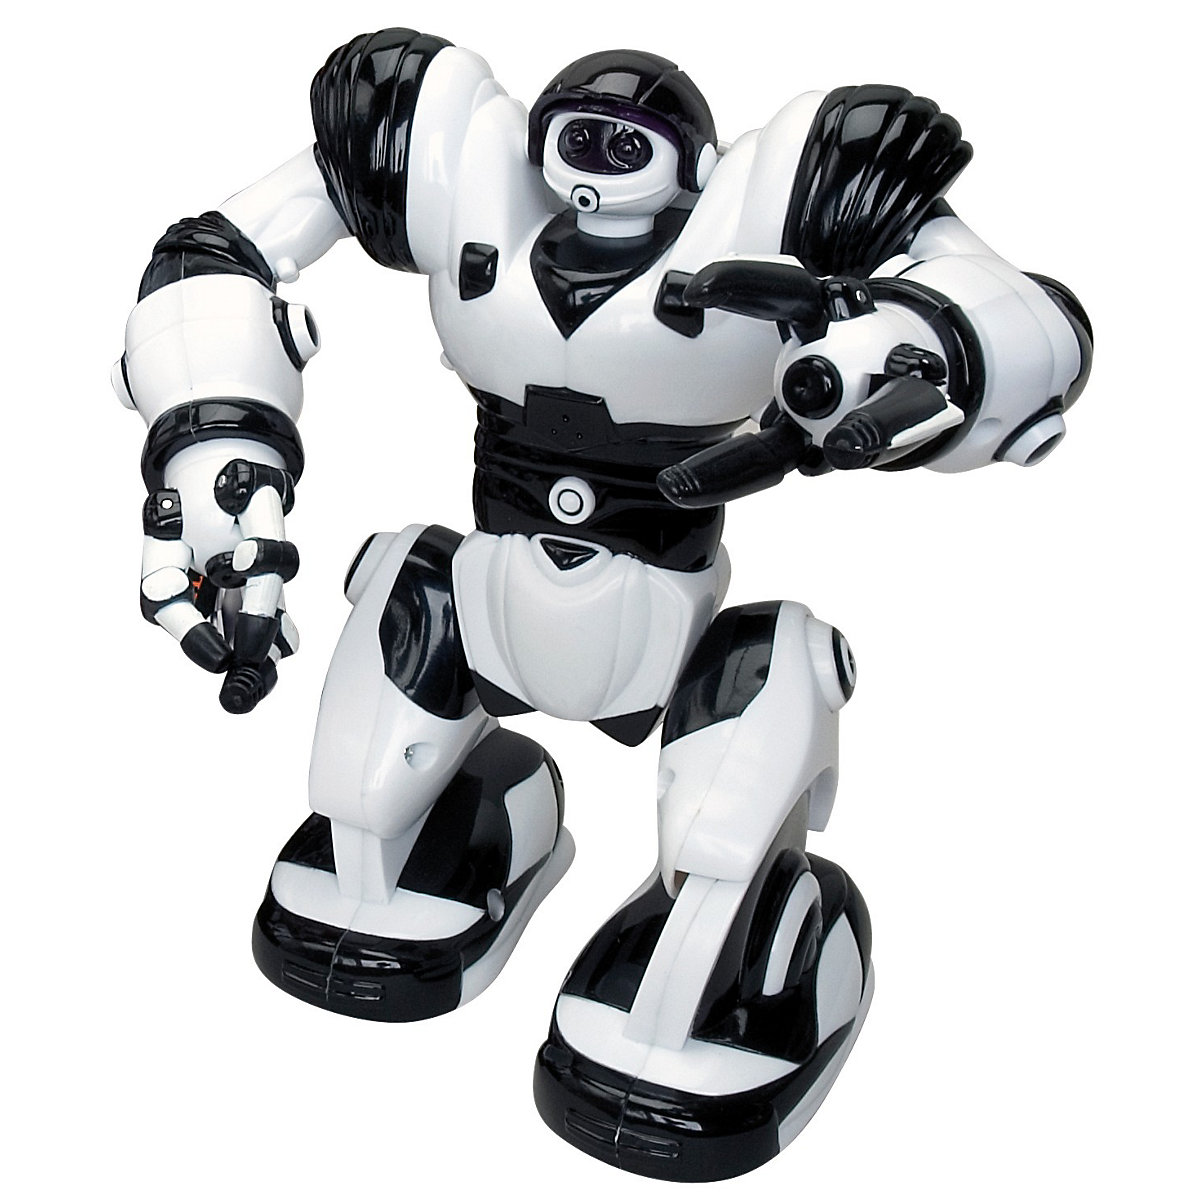 WowWee Robots & Accessories1 1525809 Intellectual Remote Control Toys Robotic Technology Game For Boys Toy